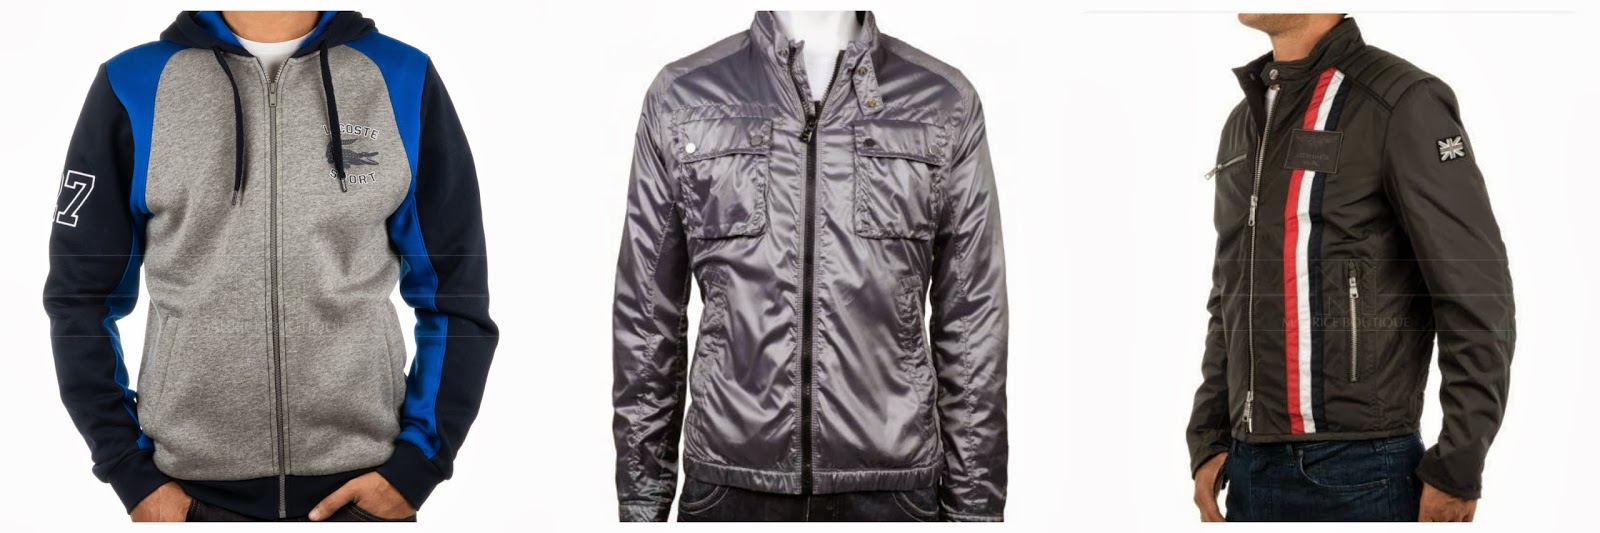 Javito cool moda masculina maurice boutique for Maurice boutique